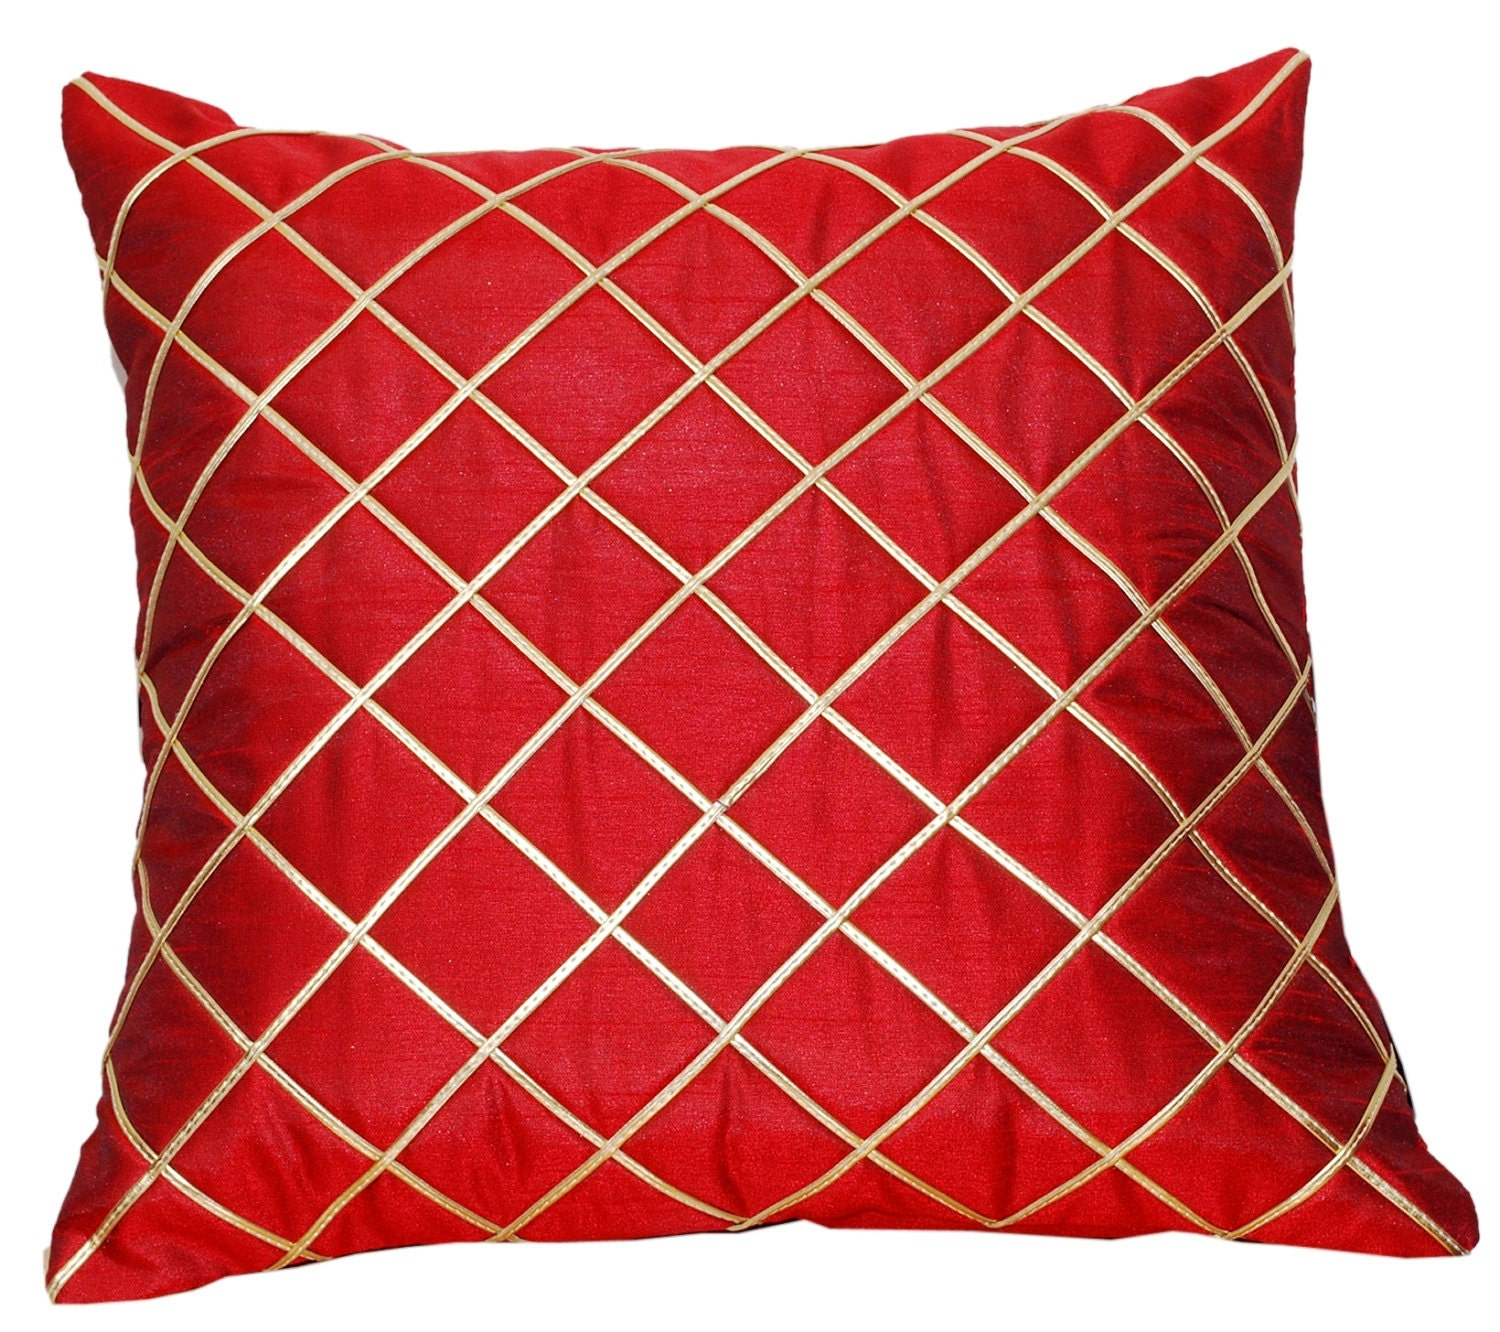 Throw Pillow Red : Diamond Throw Pillow Red Pillow Cover Throw Pillow Cover